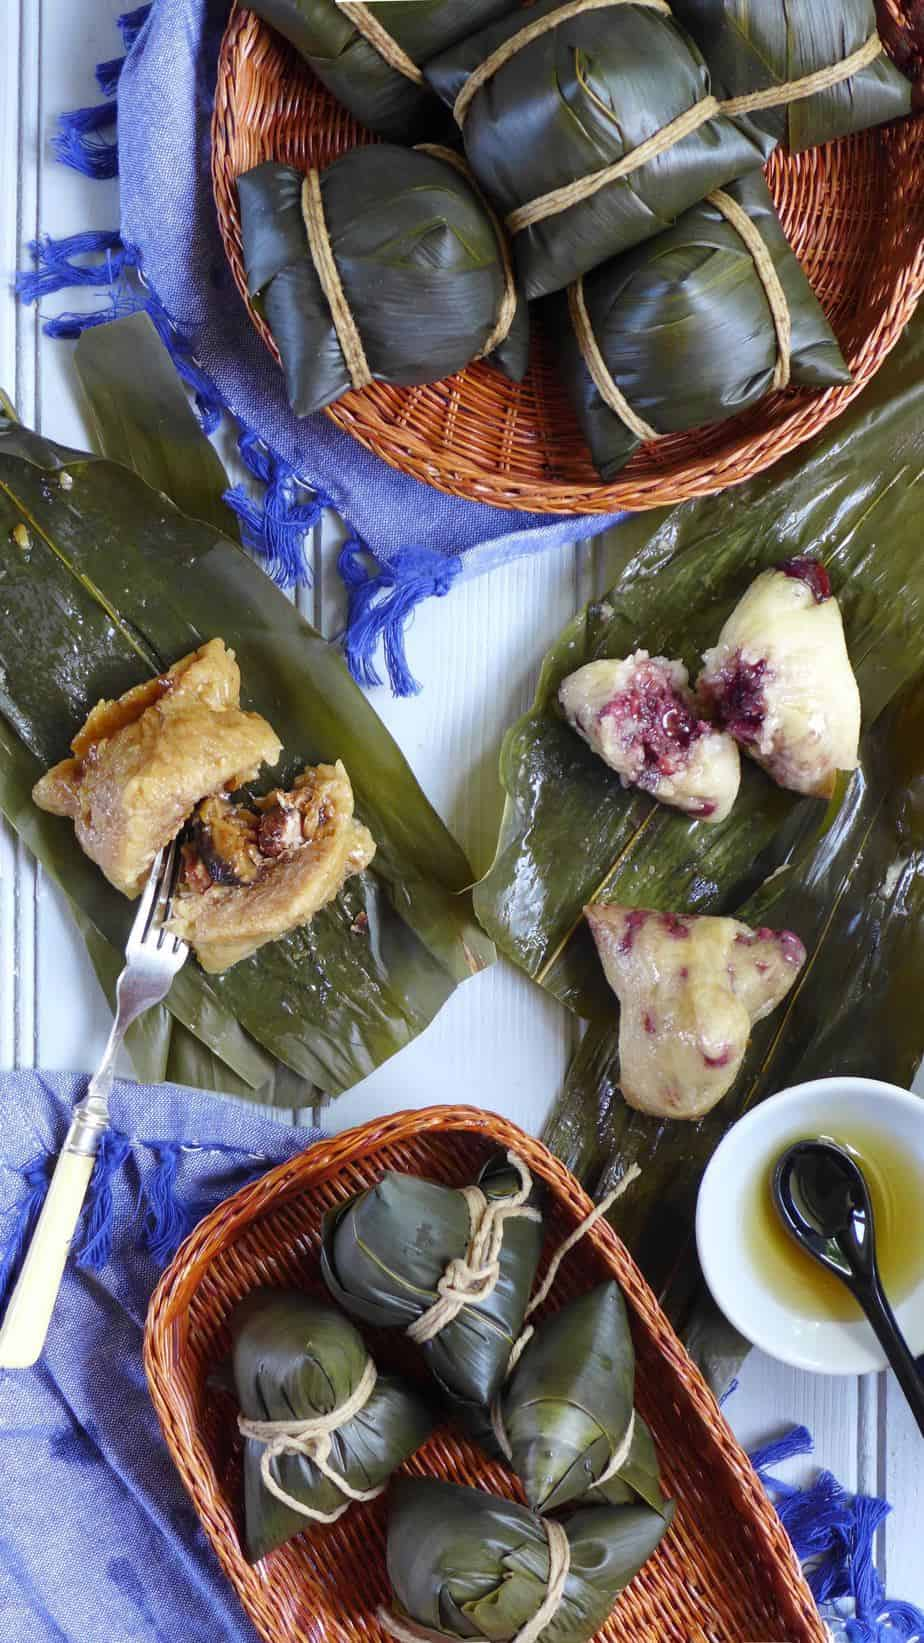 Sweet and savoury Zongzi. Some wrapped and some unwrapped.